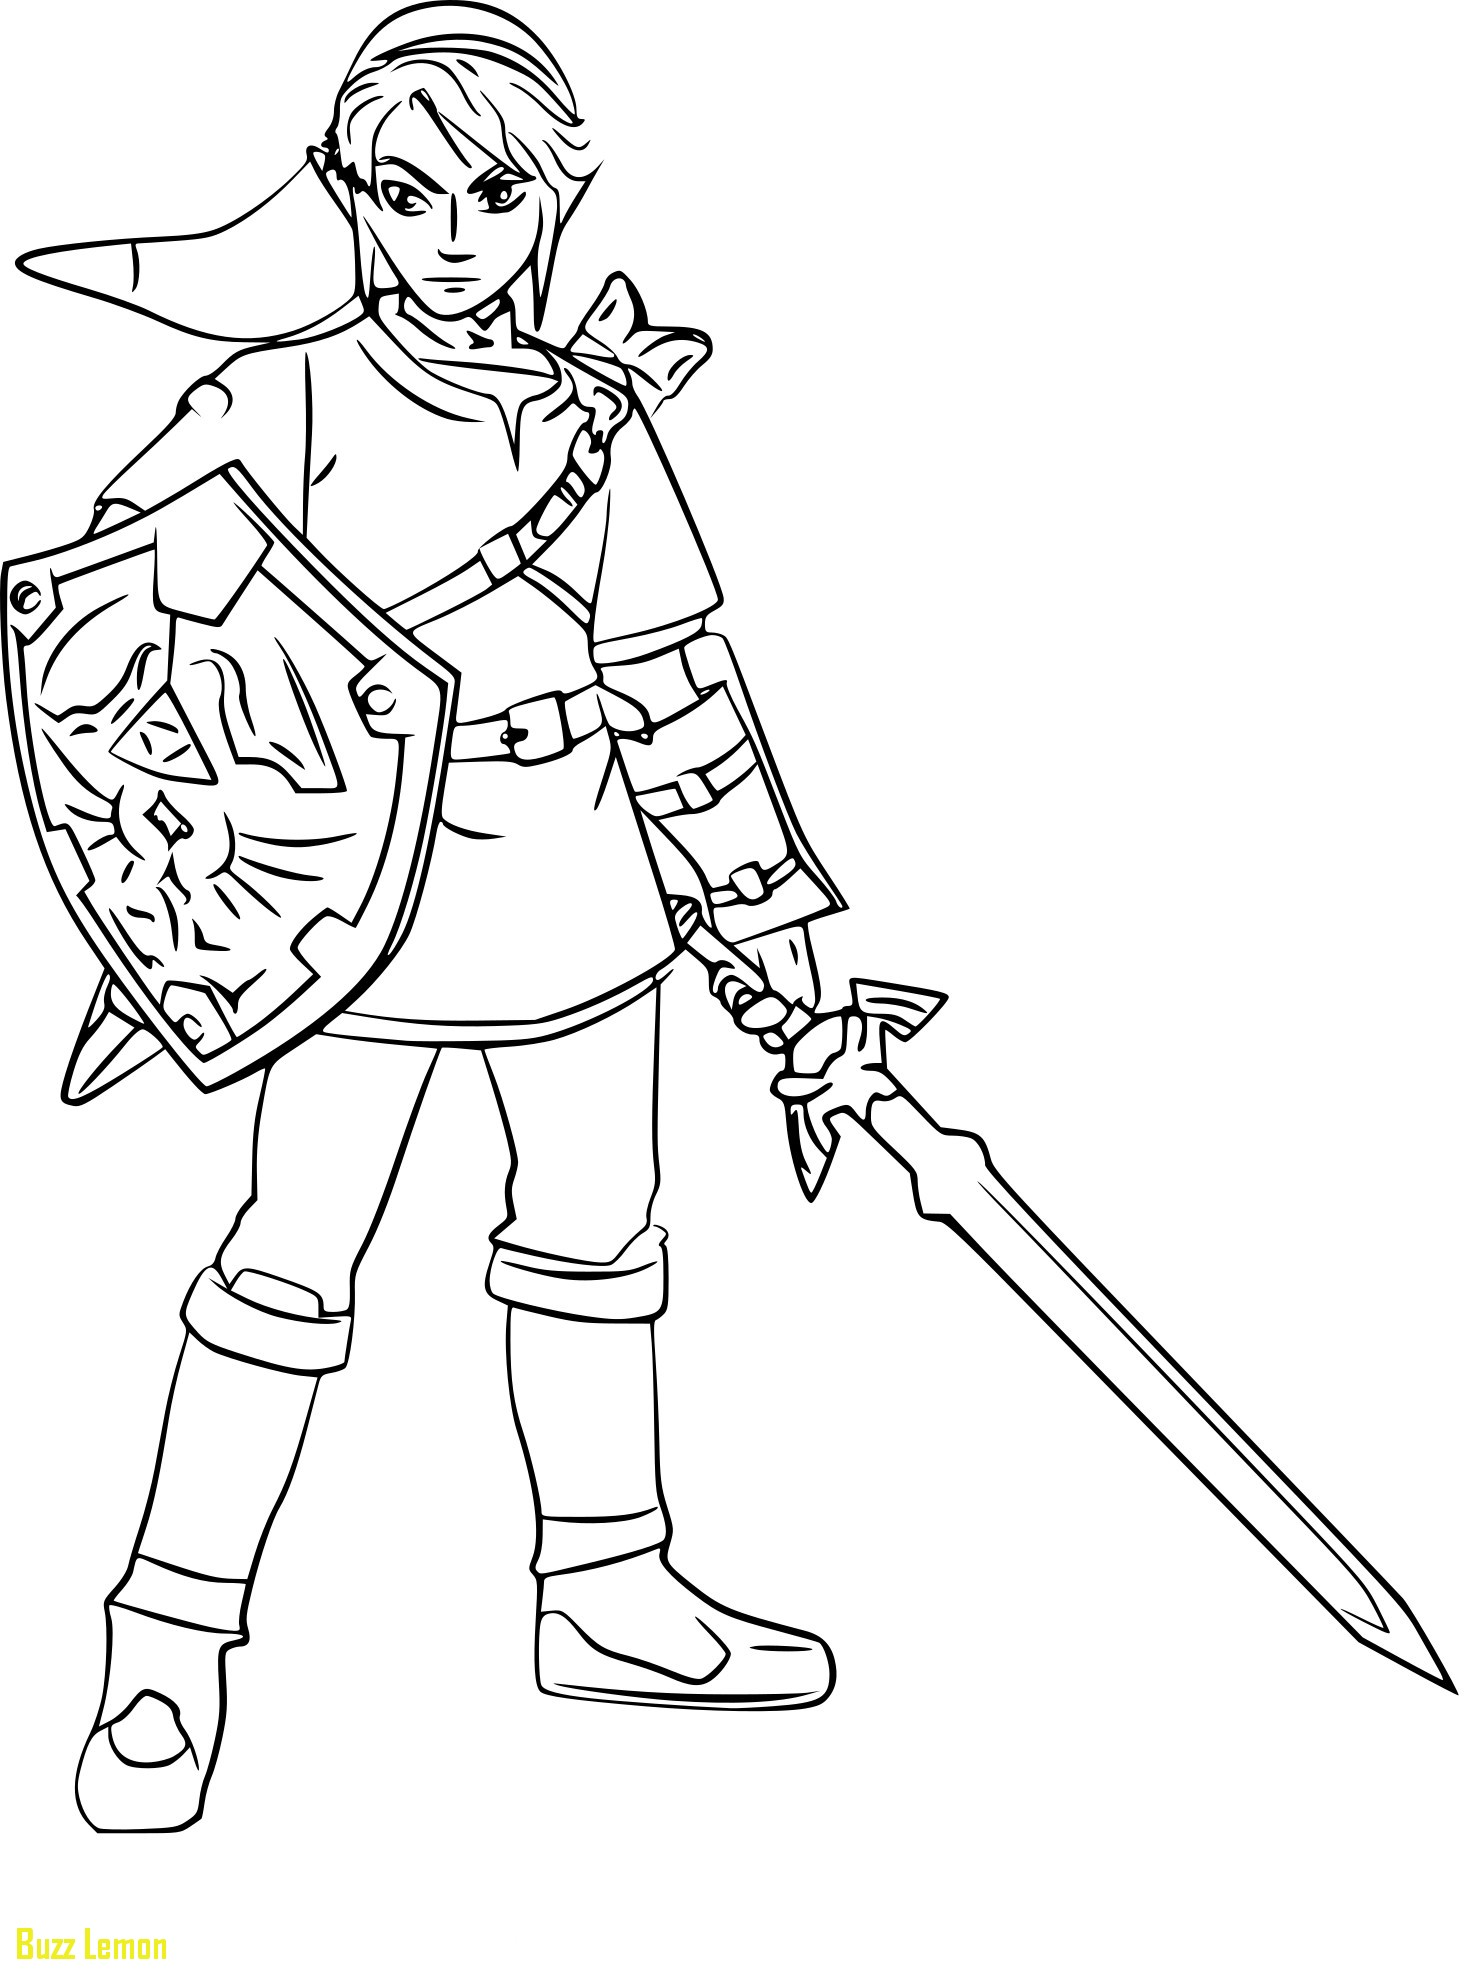 1478x1981 Coloring Page Zelda New Zelda Coloring Page Coloring Pages Buzz